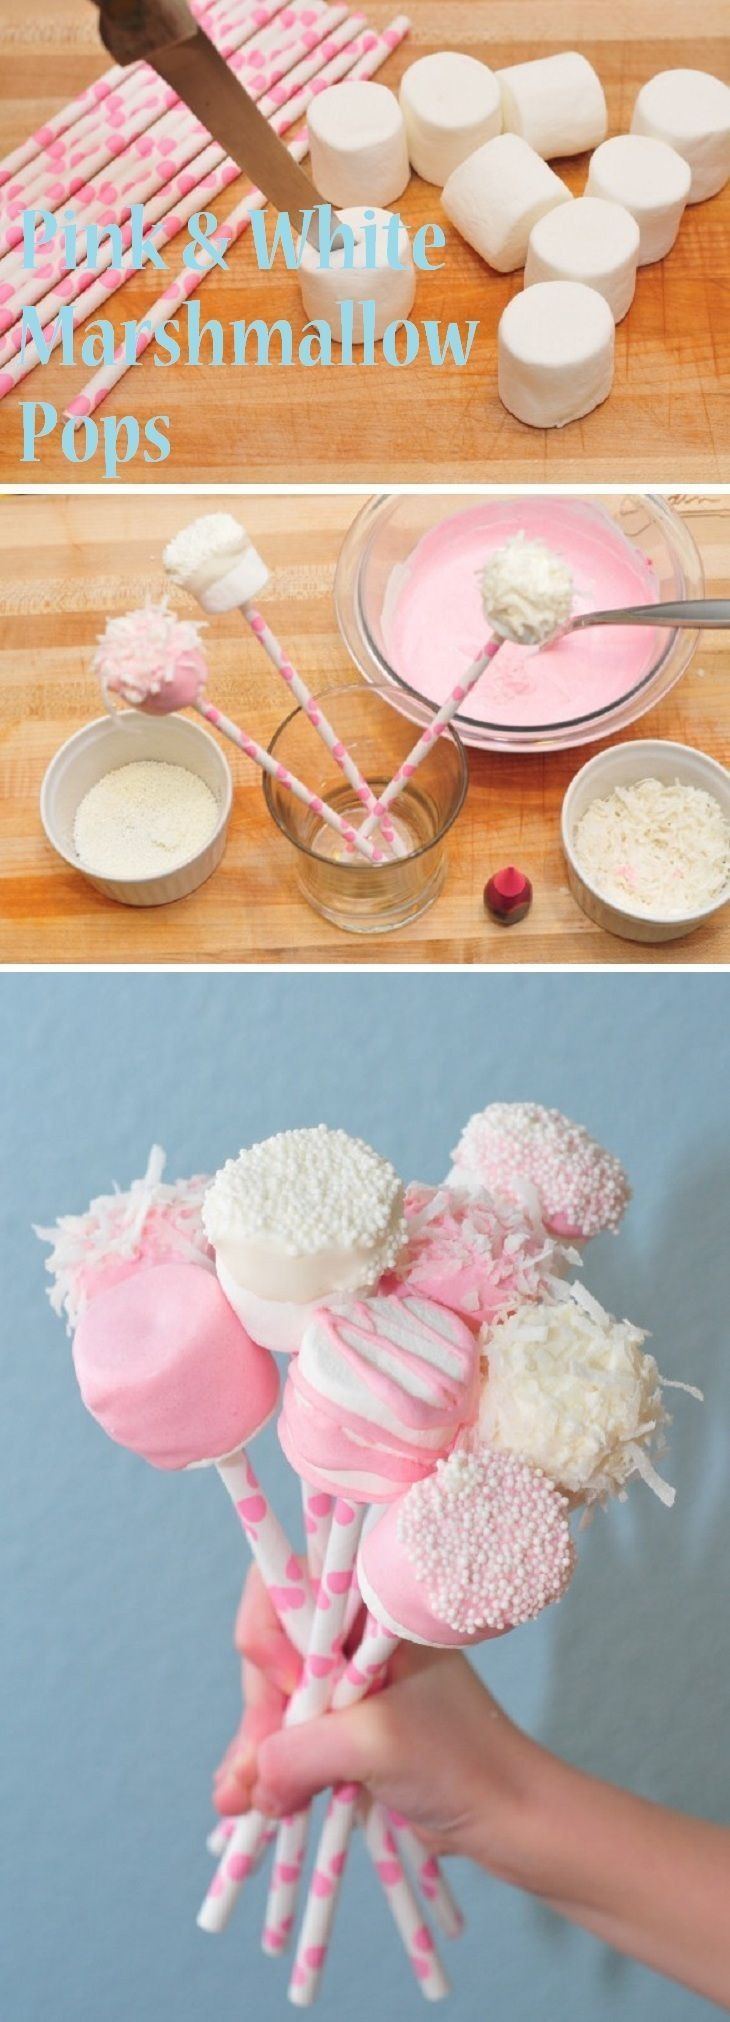 Baby shower rice krispy treat ideas - Pink And White Marshmallow Pops Baby Shower Baby Shower Ideas Baby Girl Baby Shower Food Baby Shower Party Favors Baby Shower Party Themes Baby Shower